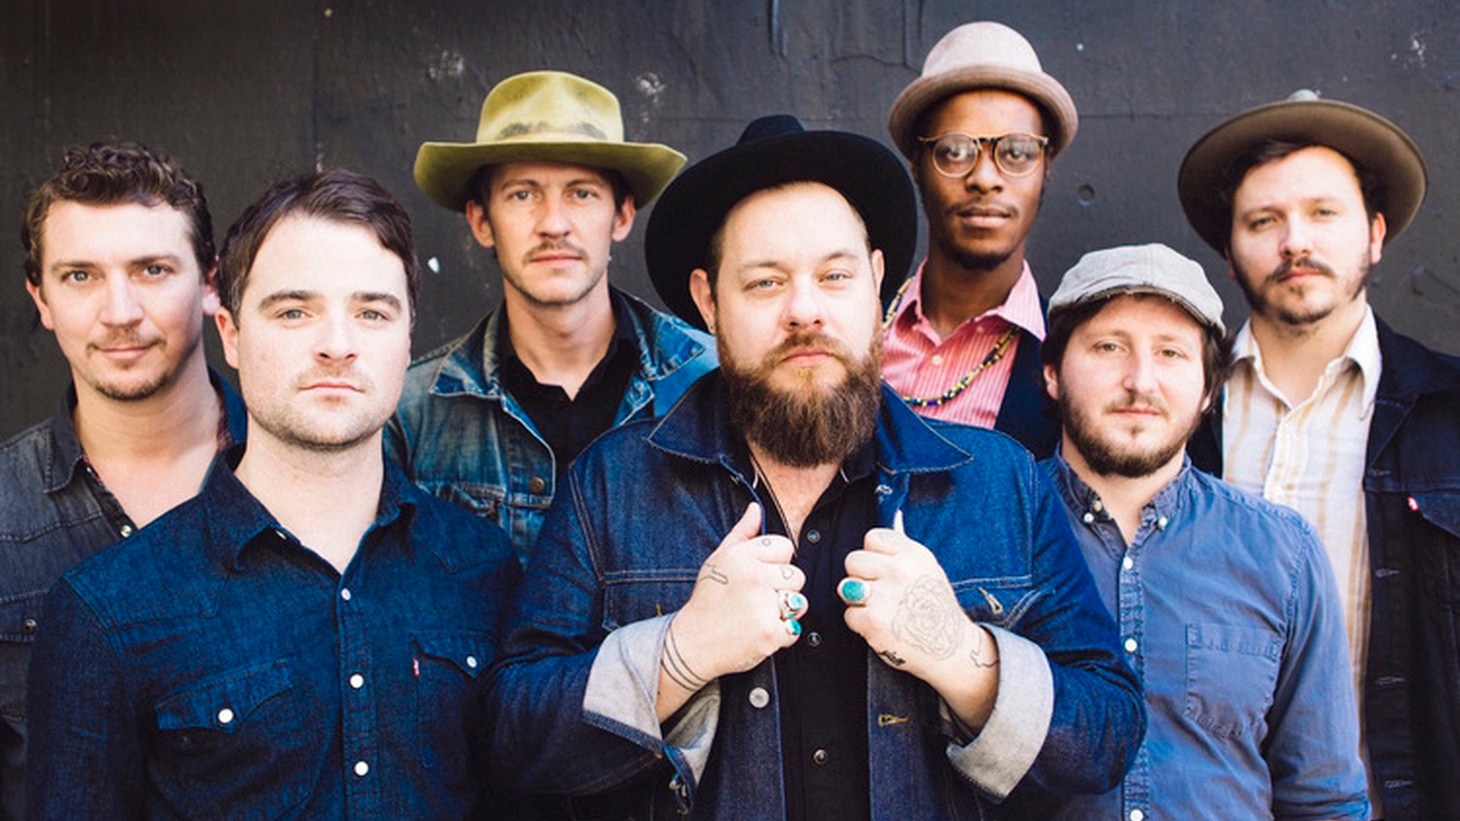 It's no surprise to see Nathaniel Rateliff's new album released on the legendary Stax label. The Denver-based bluesmith has a lighthearted approach to darker subjects and chose Richard Swift as producer.